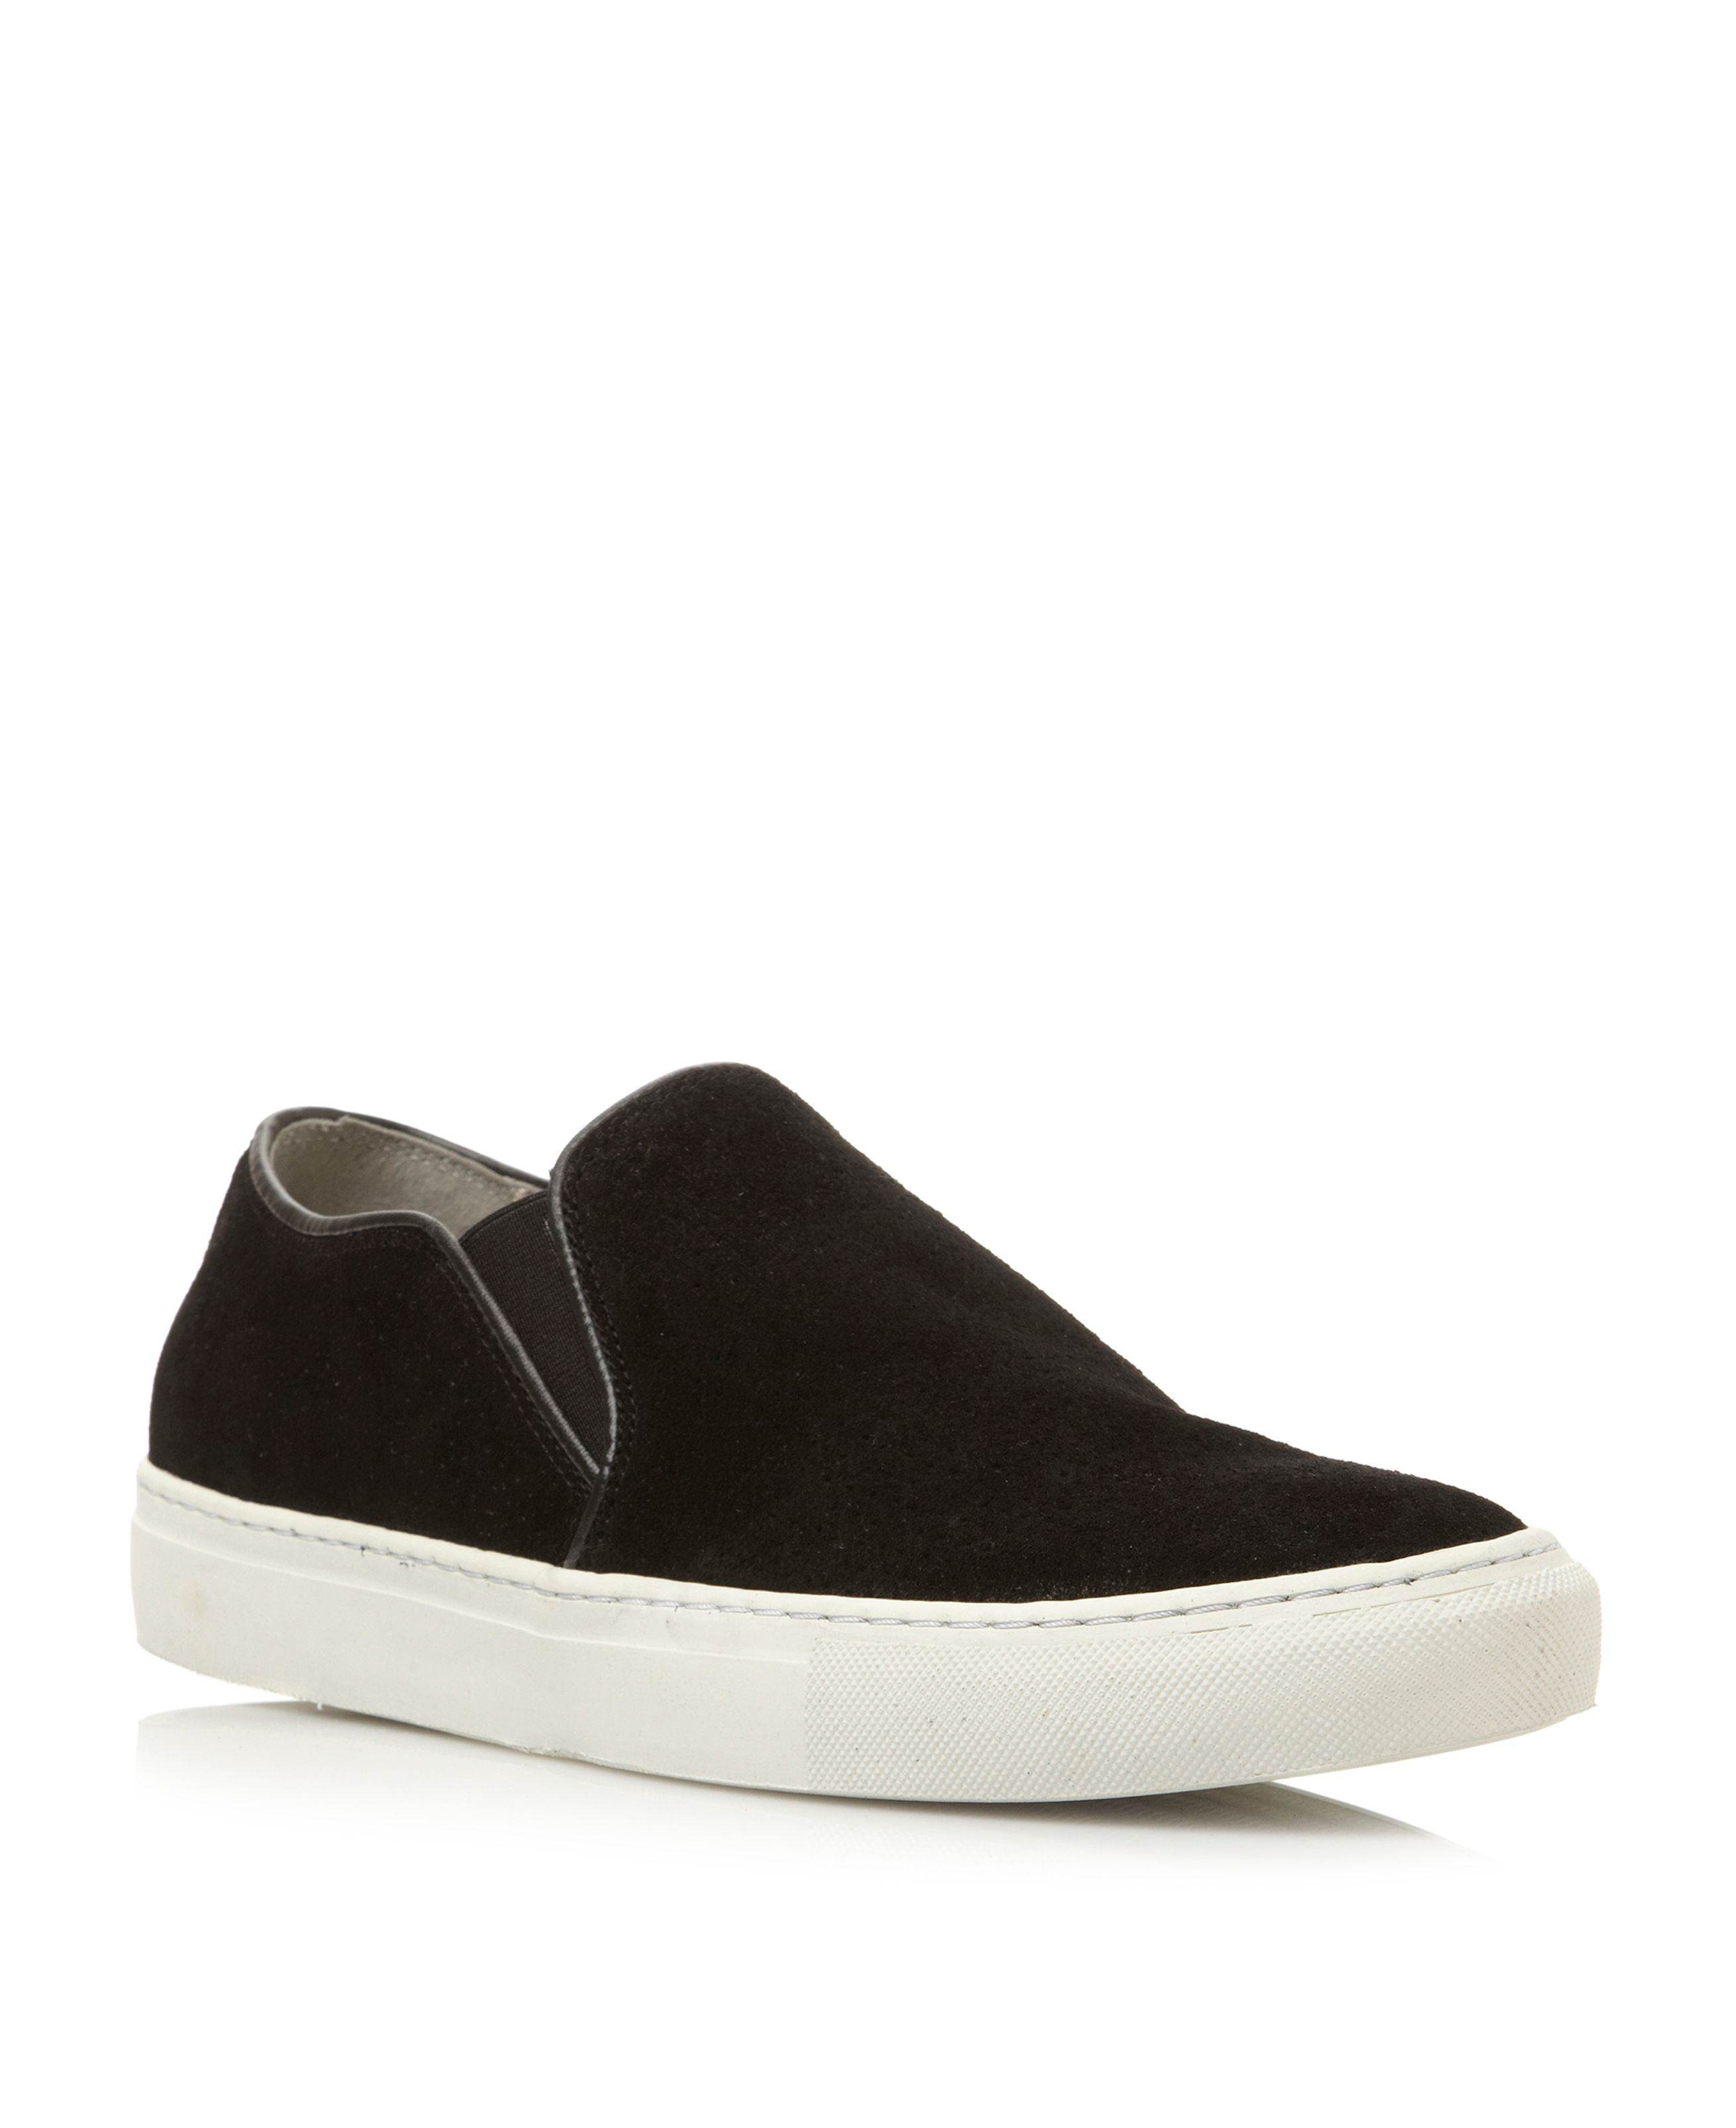 Battersea elasticated perforated slip ons